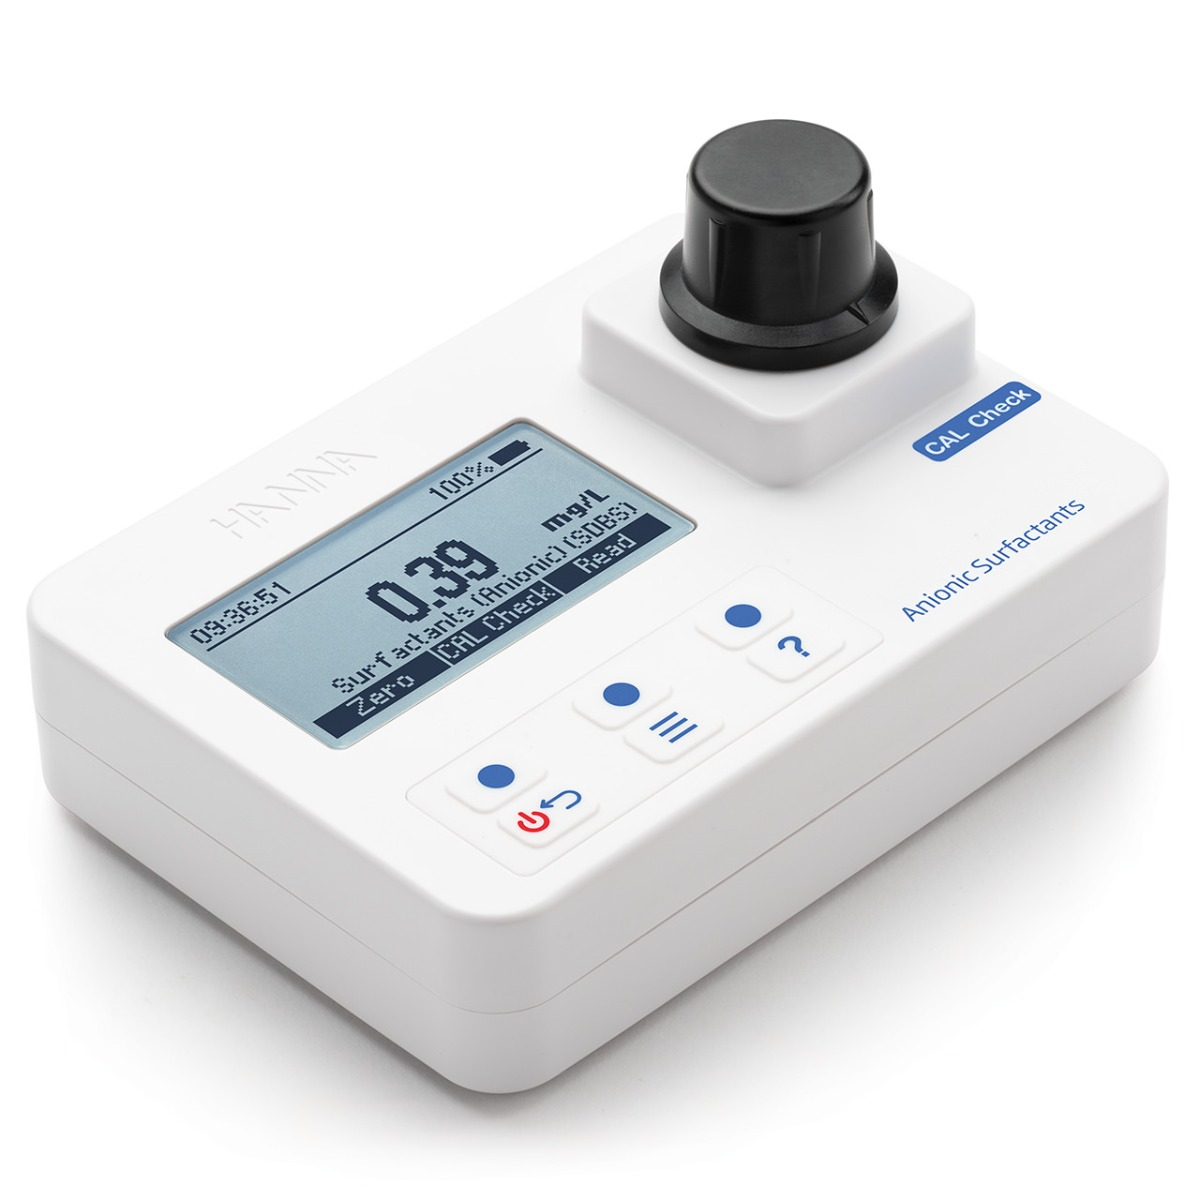 Anionic Surfactants Portable Photometer with CAL Check – HI97769